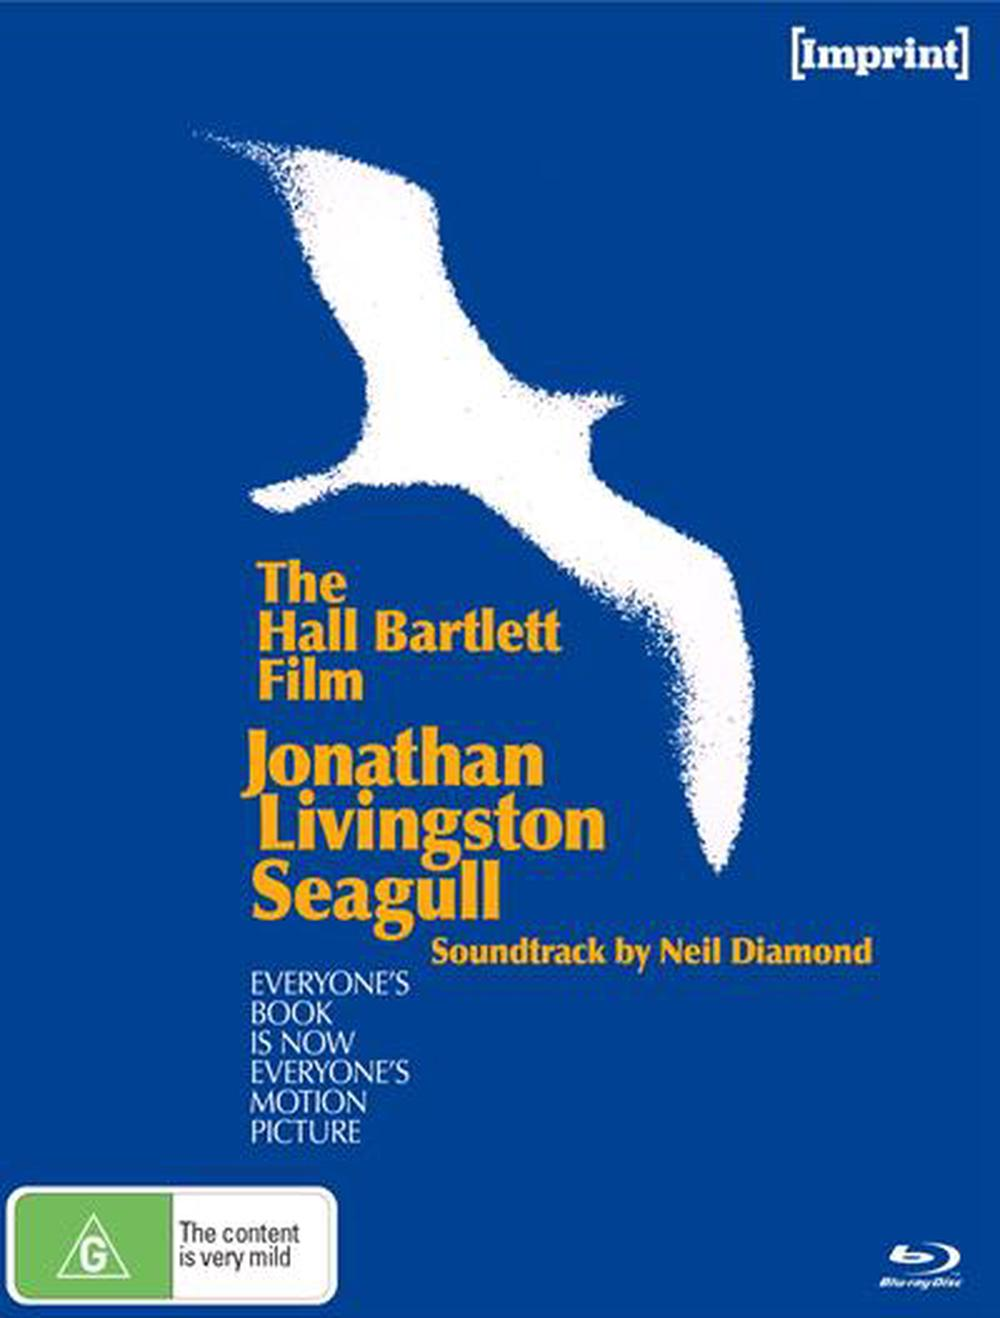 Jonathan Livingston Seagull | Imprint Collection 22